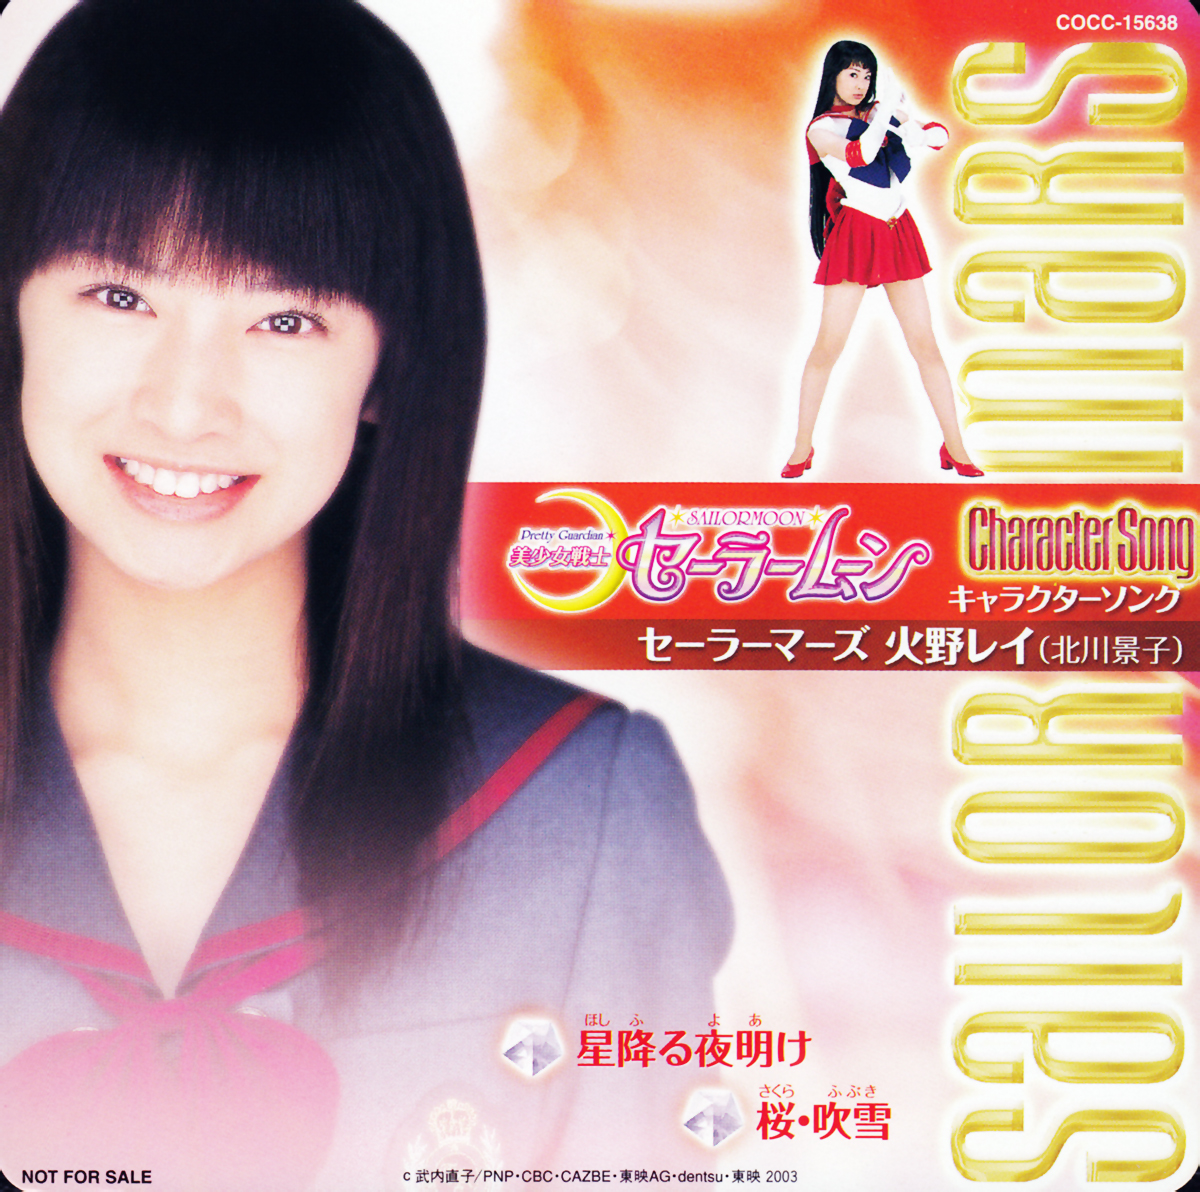 Pgsm_sailor_mars_04